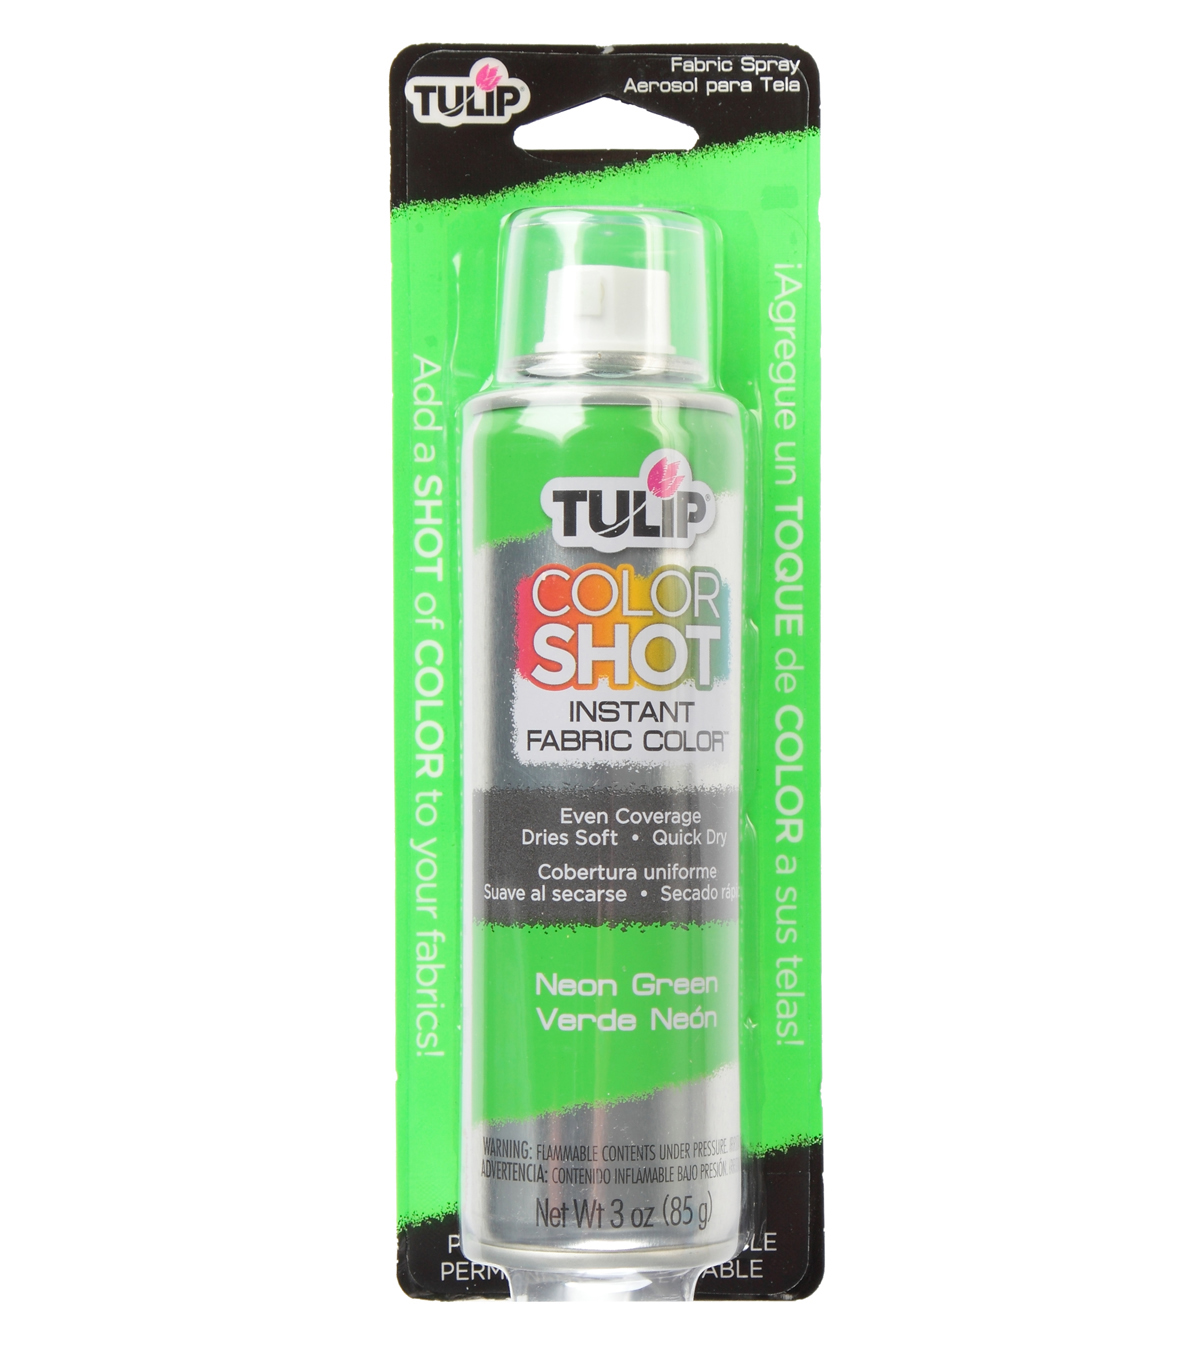 Tulip ColorShot Instant Fabric Color Spray 3oz, Neon Green